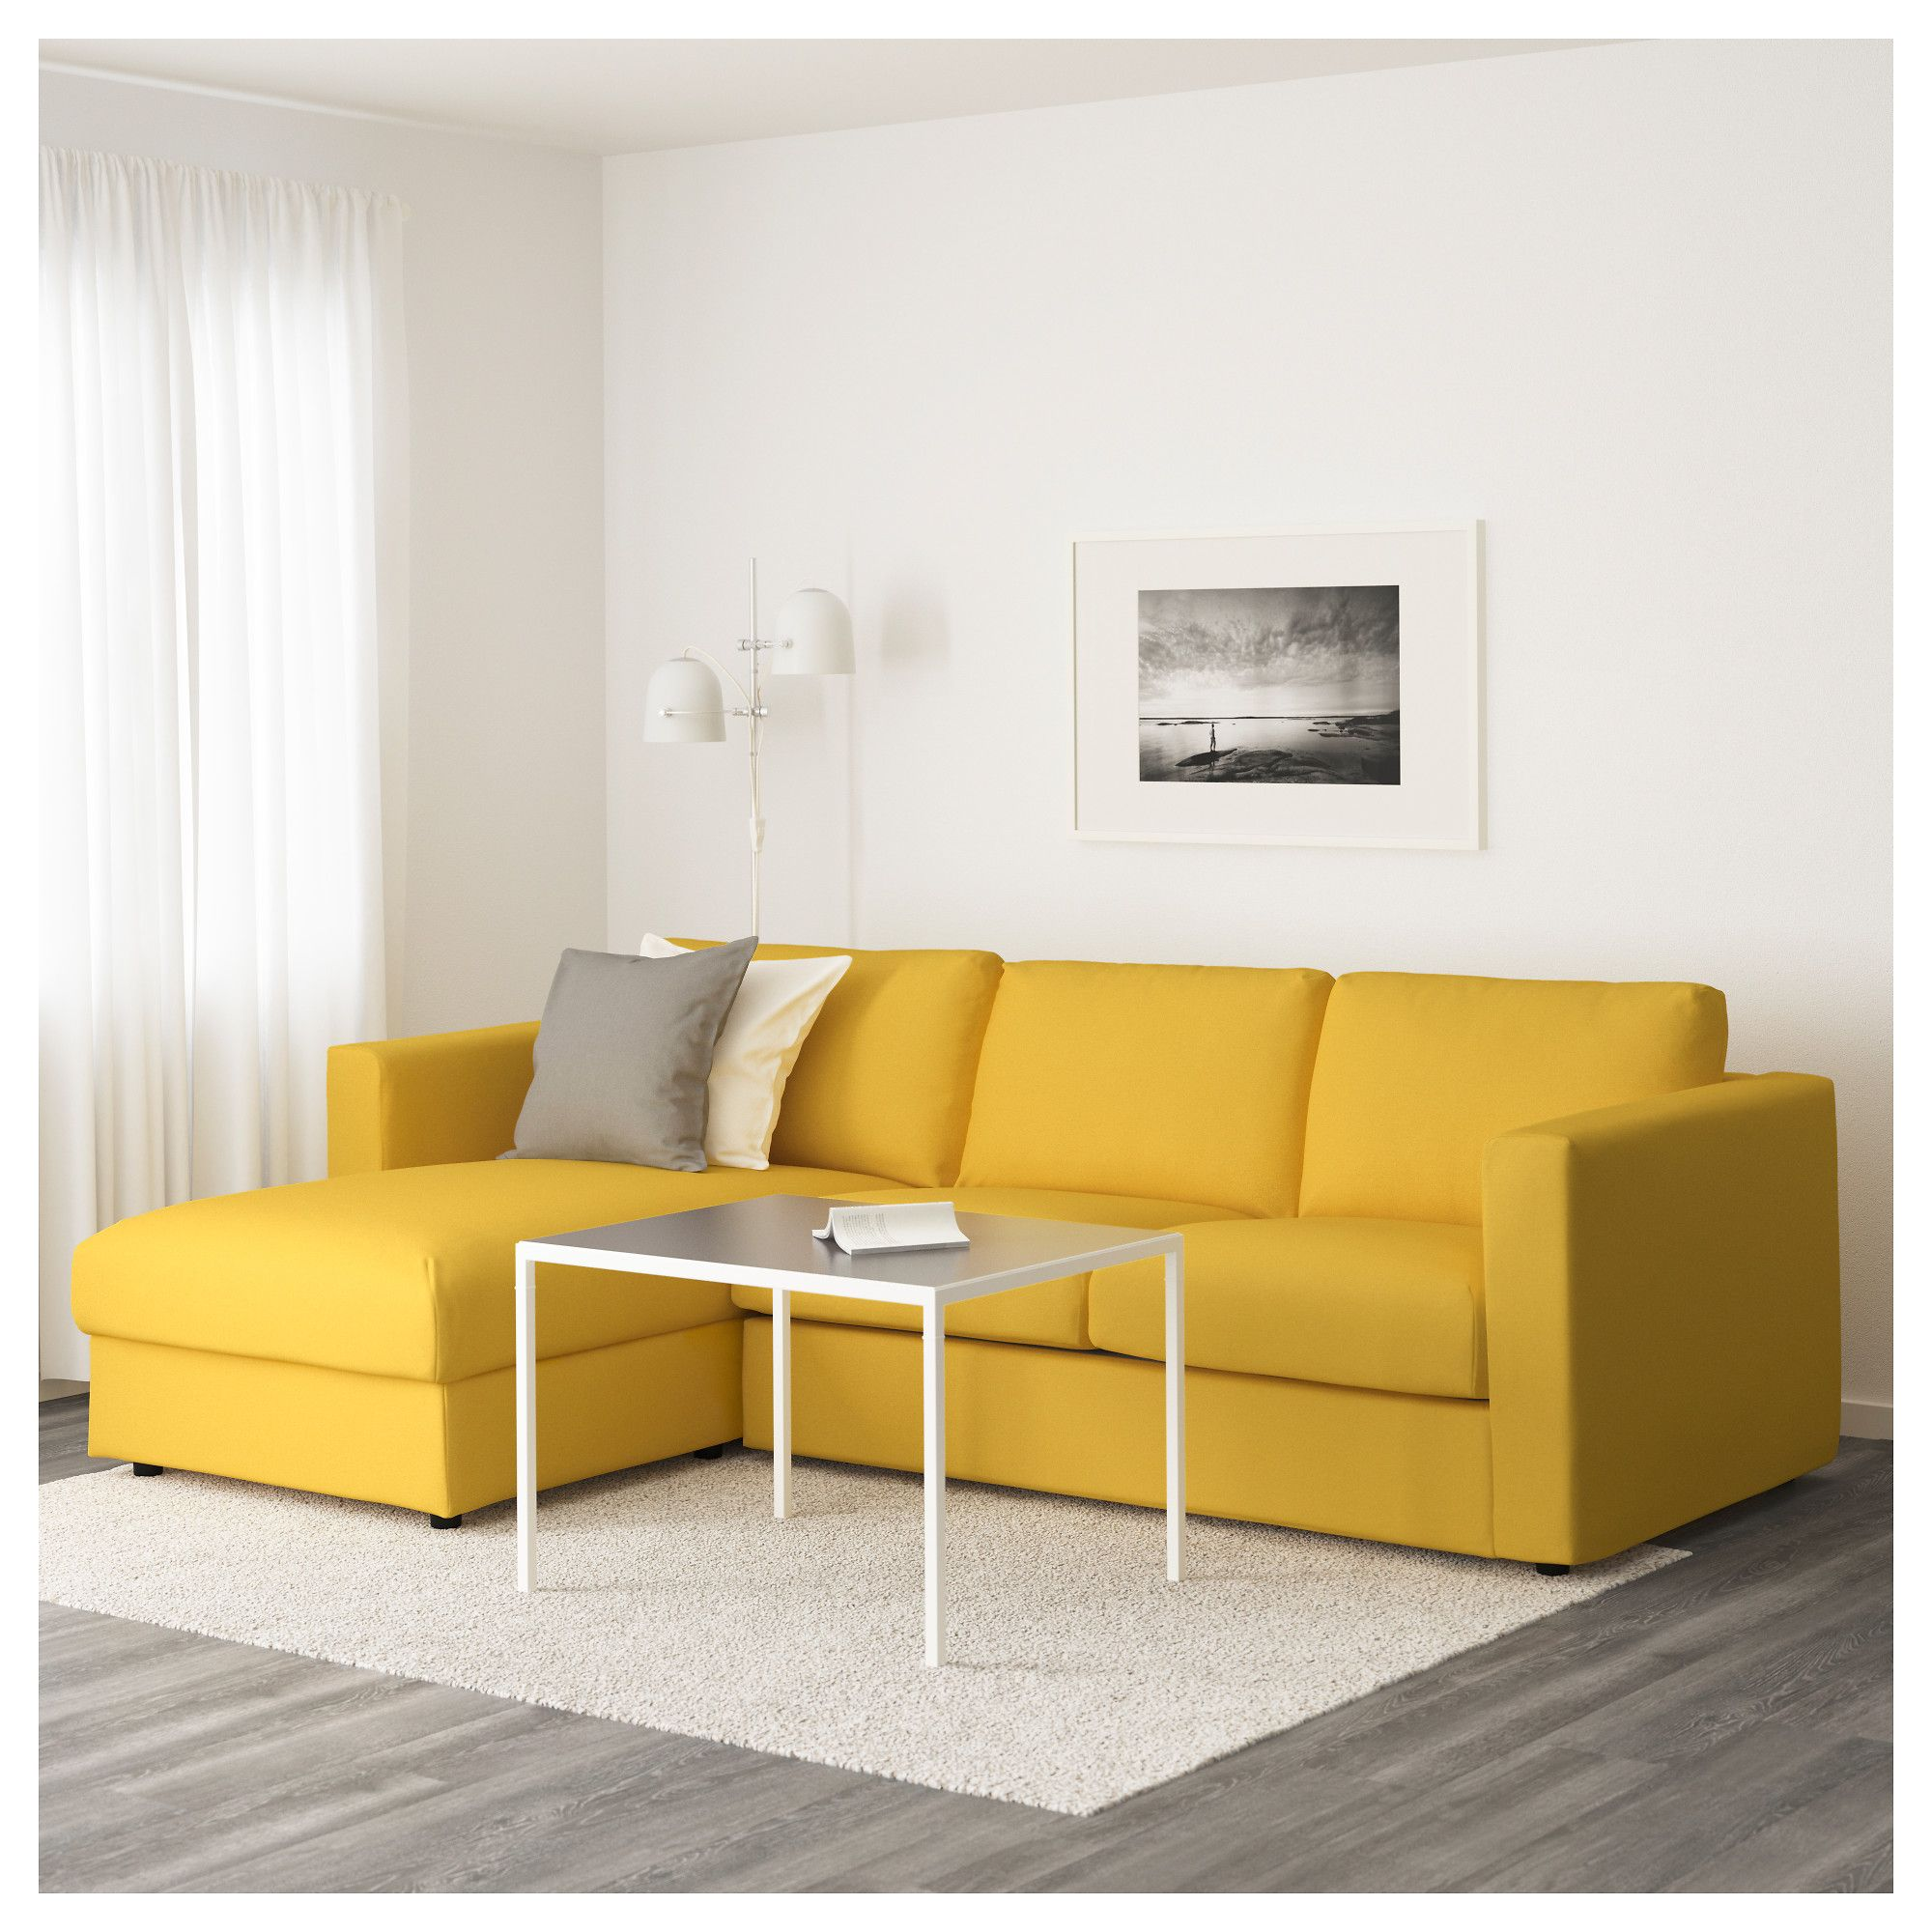 Furniture And Home Furnishings In 2019 Ikea Vimle Sofa